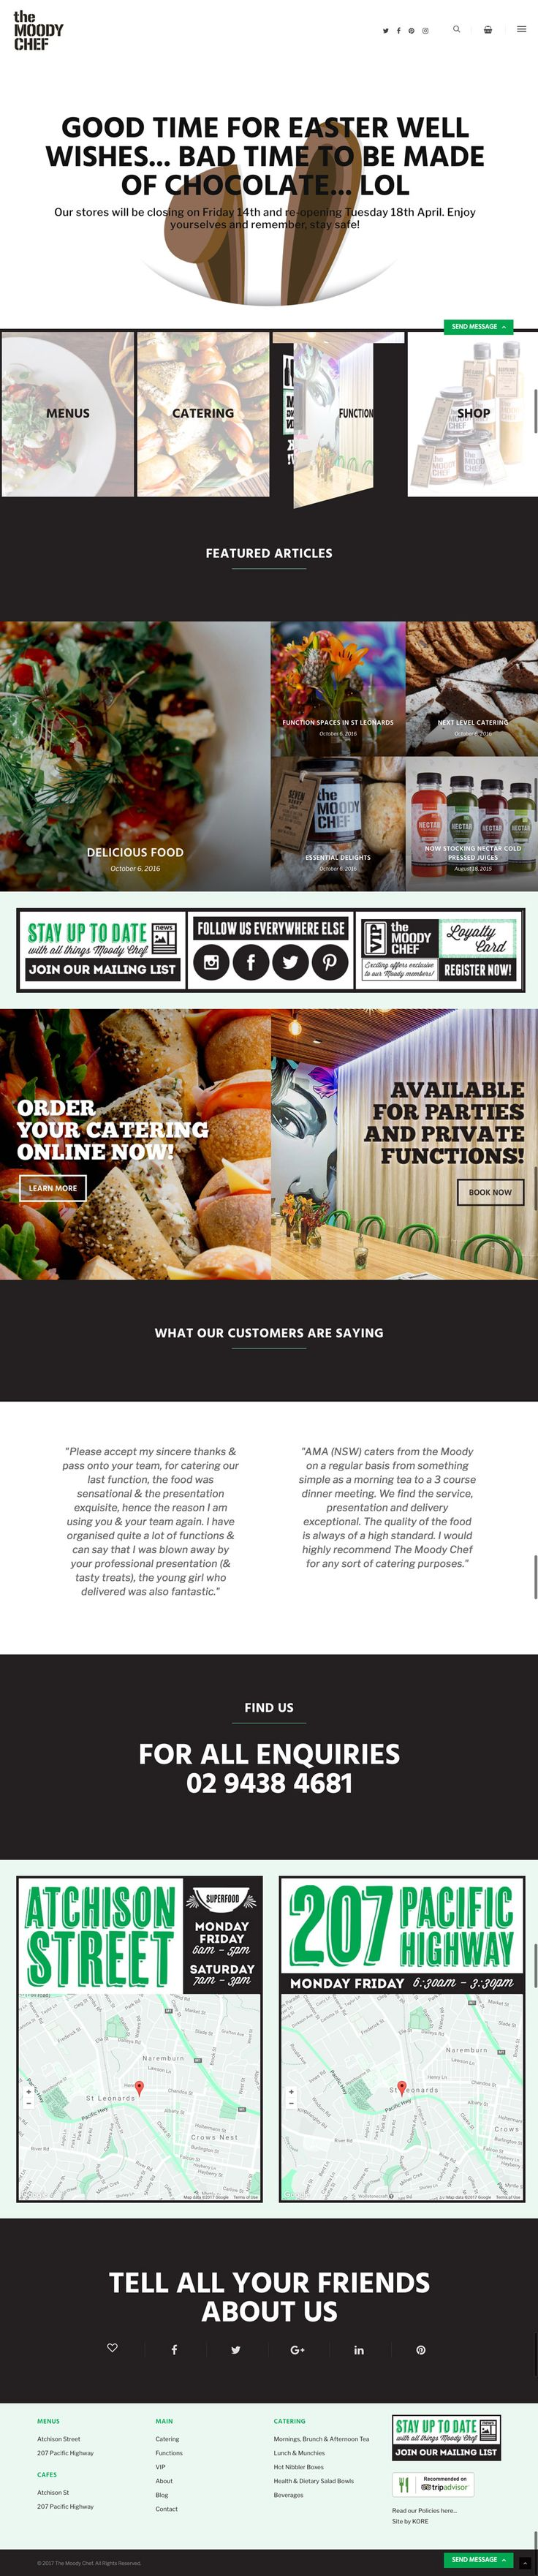 The Moody Chef Easter homepage by KORE Responsive WordPress website. http://kore.digital About web page view.